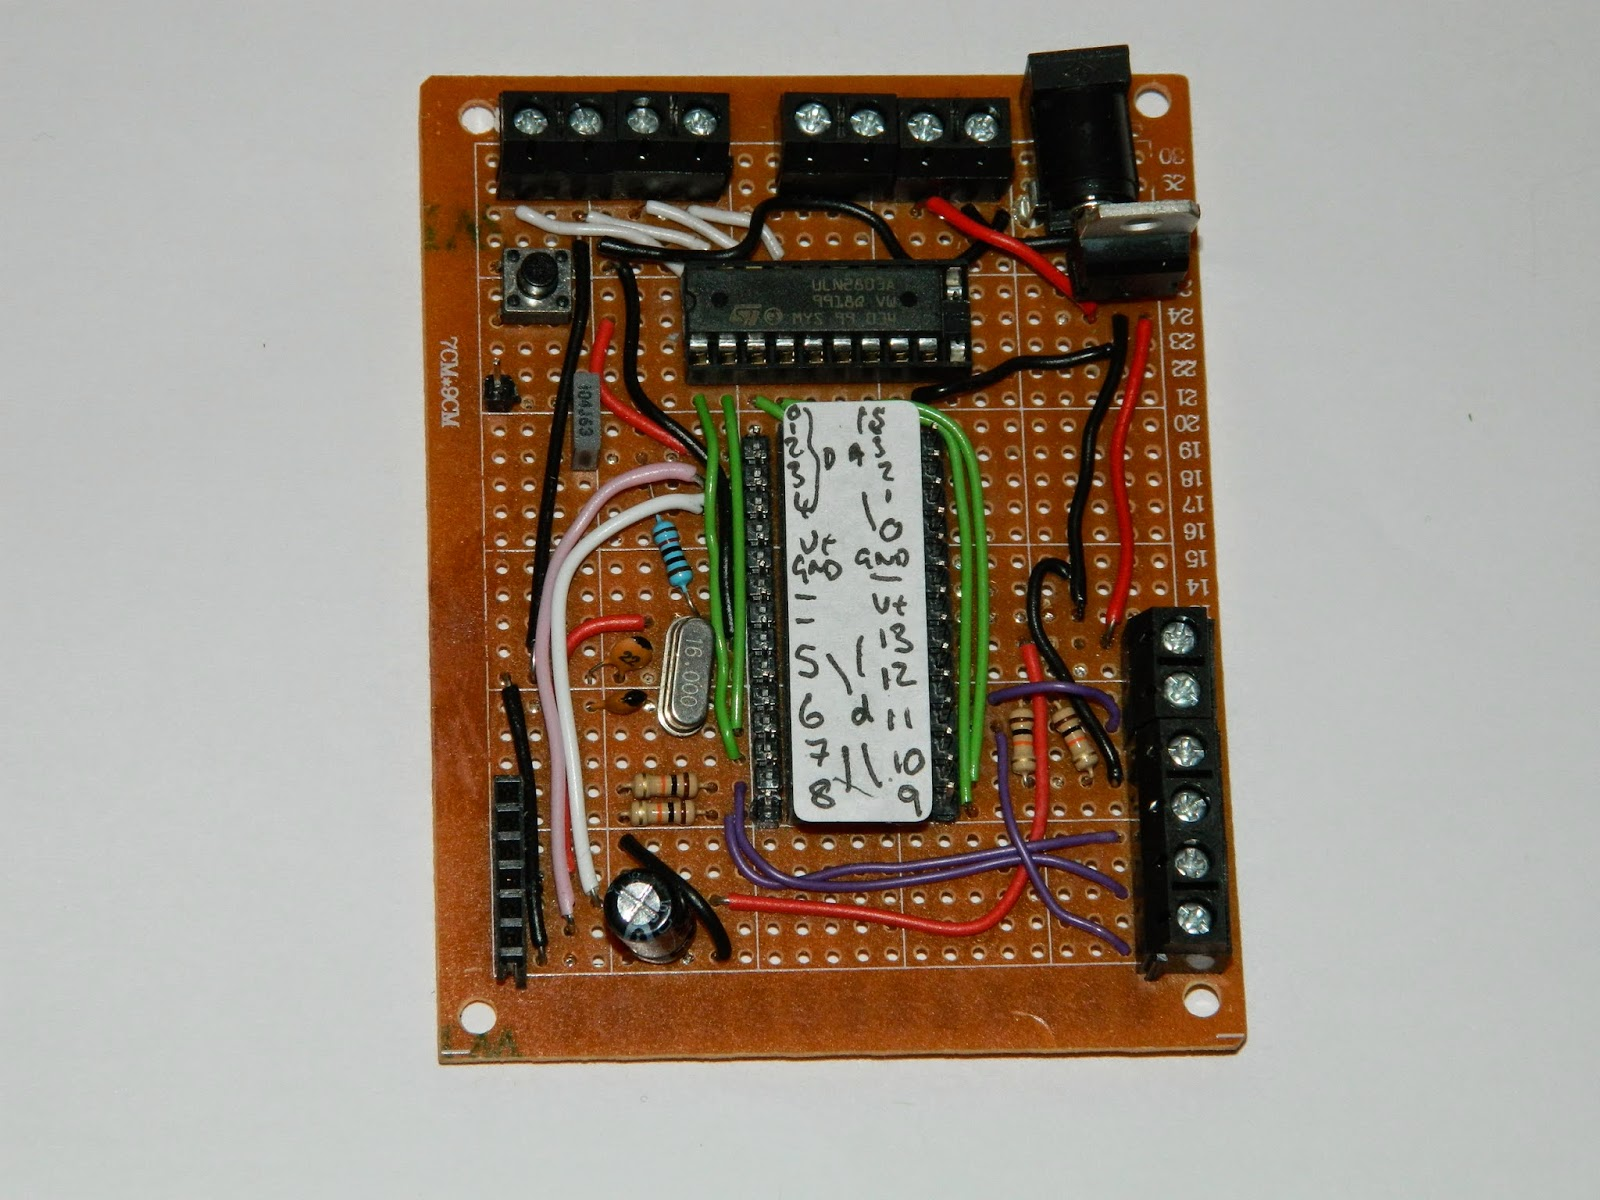 Understanding A Circuit Label In Icsp Programmer For Atmega